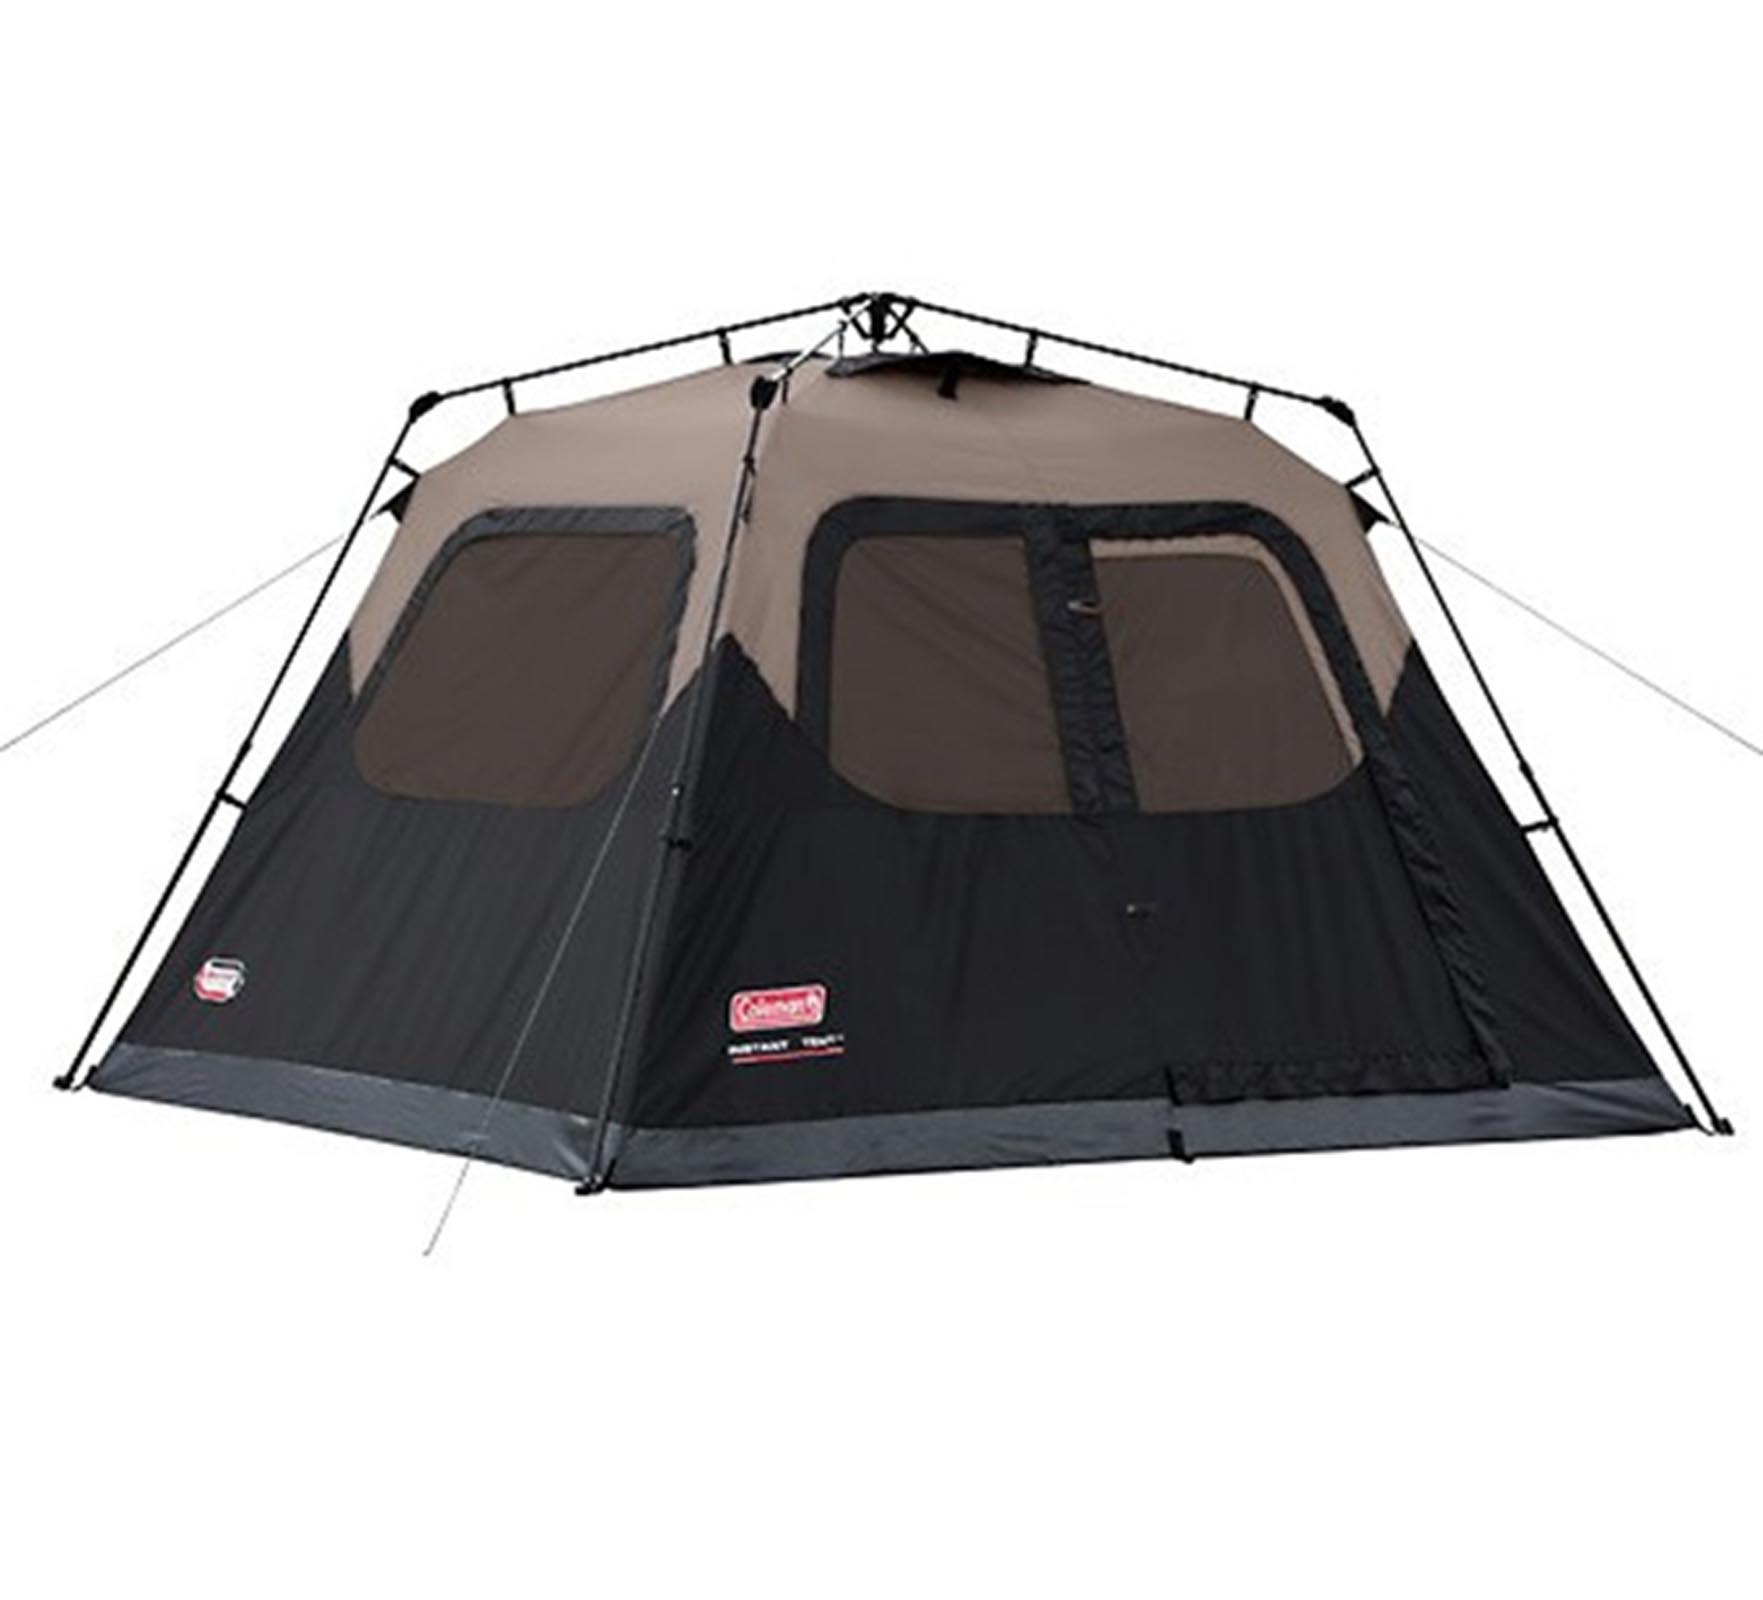 Coleman 6 Person Instant Tent w/ WeatherTec System - 10' x 9'